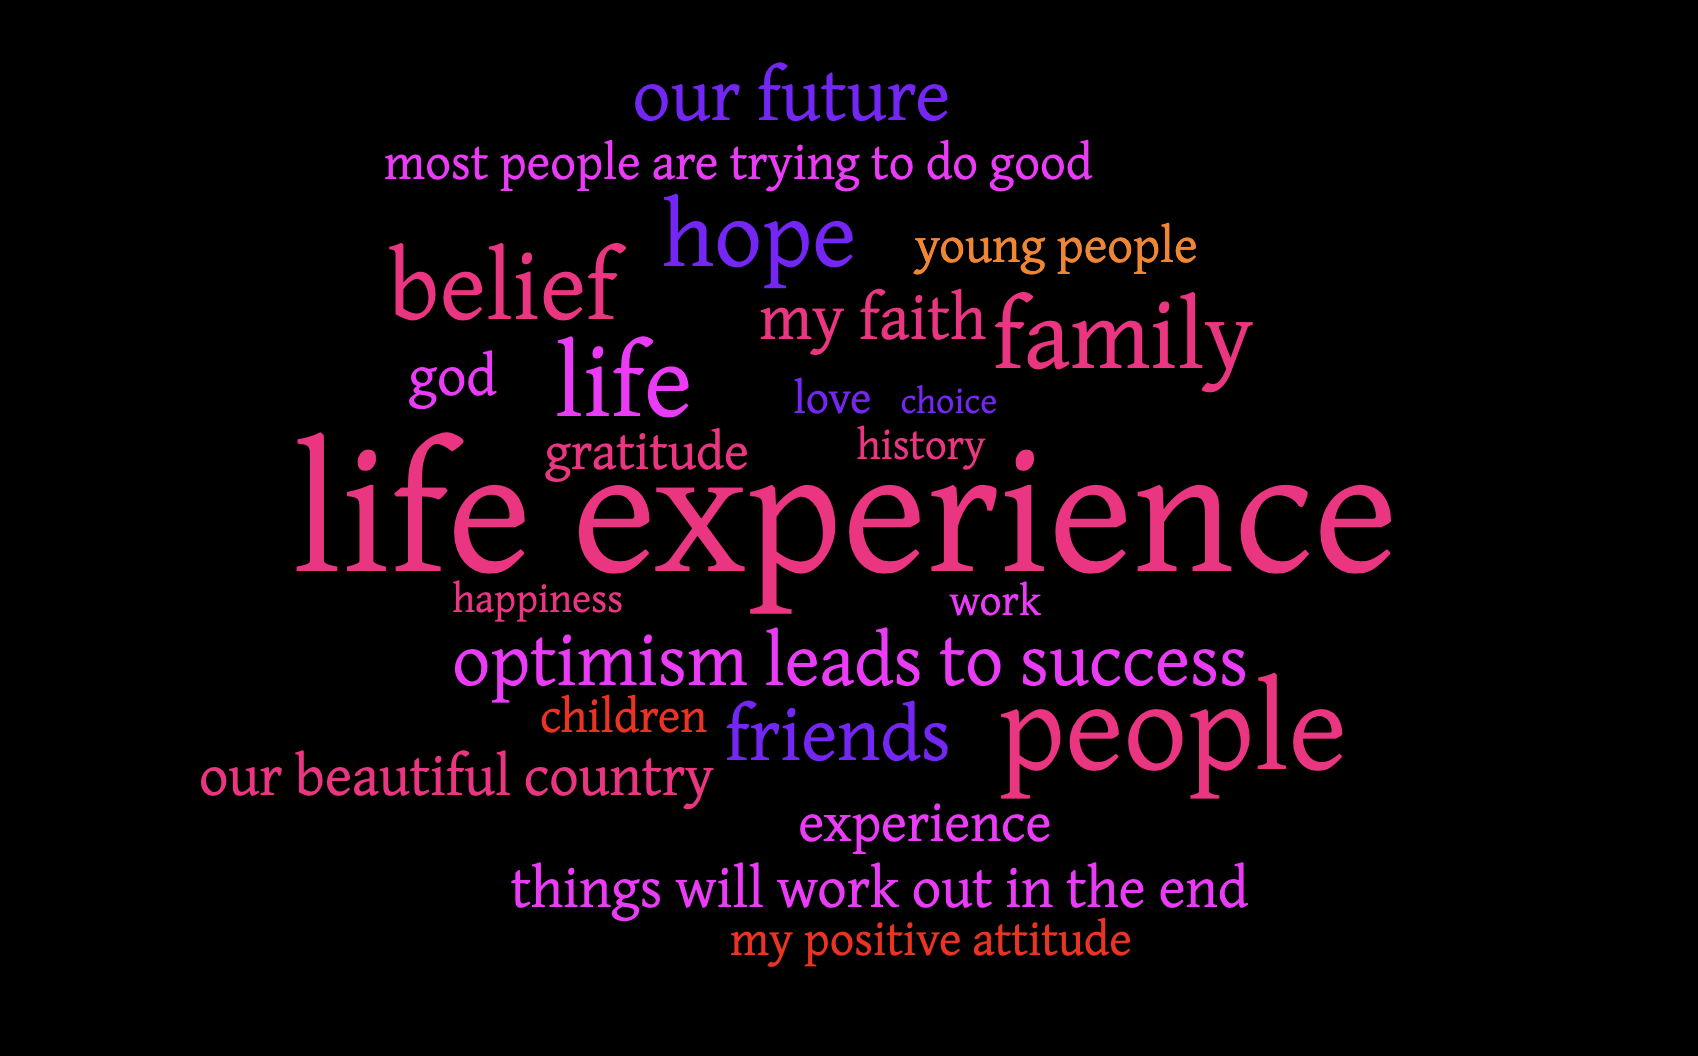 What makes you Optimistic?